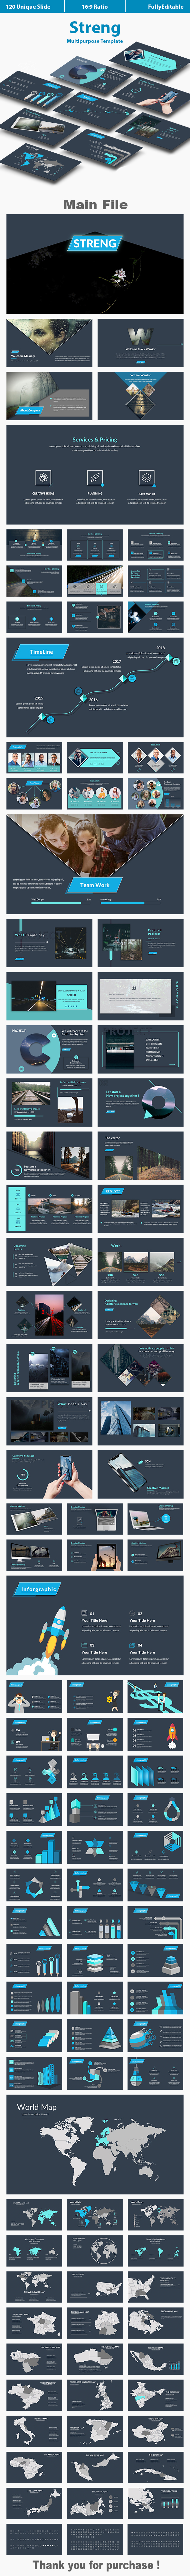 Streng Multipurpose Keynote Template - Creative Keynote Templates